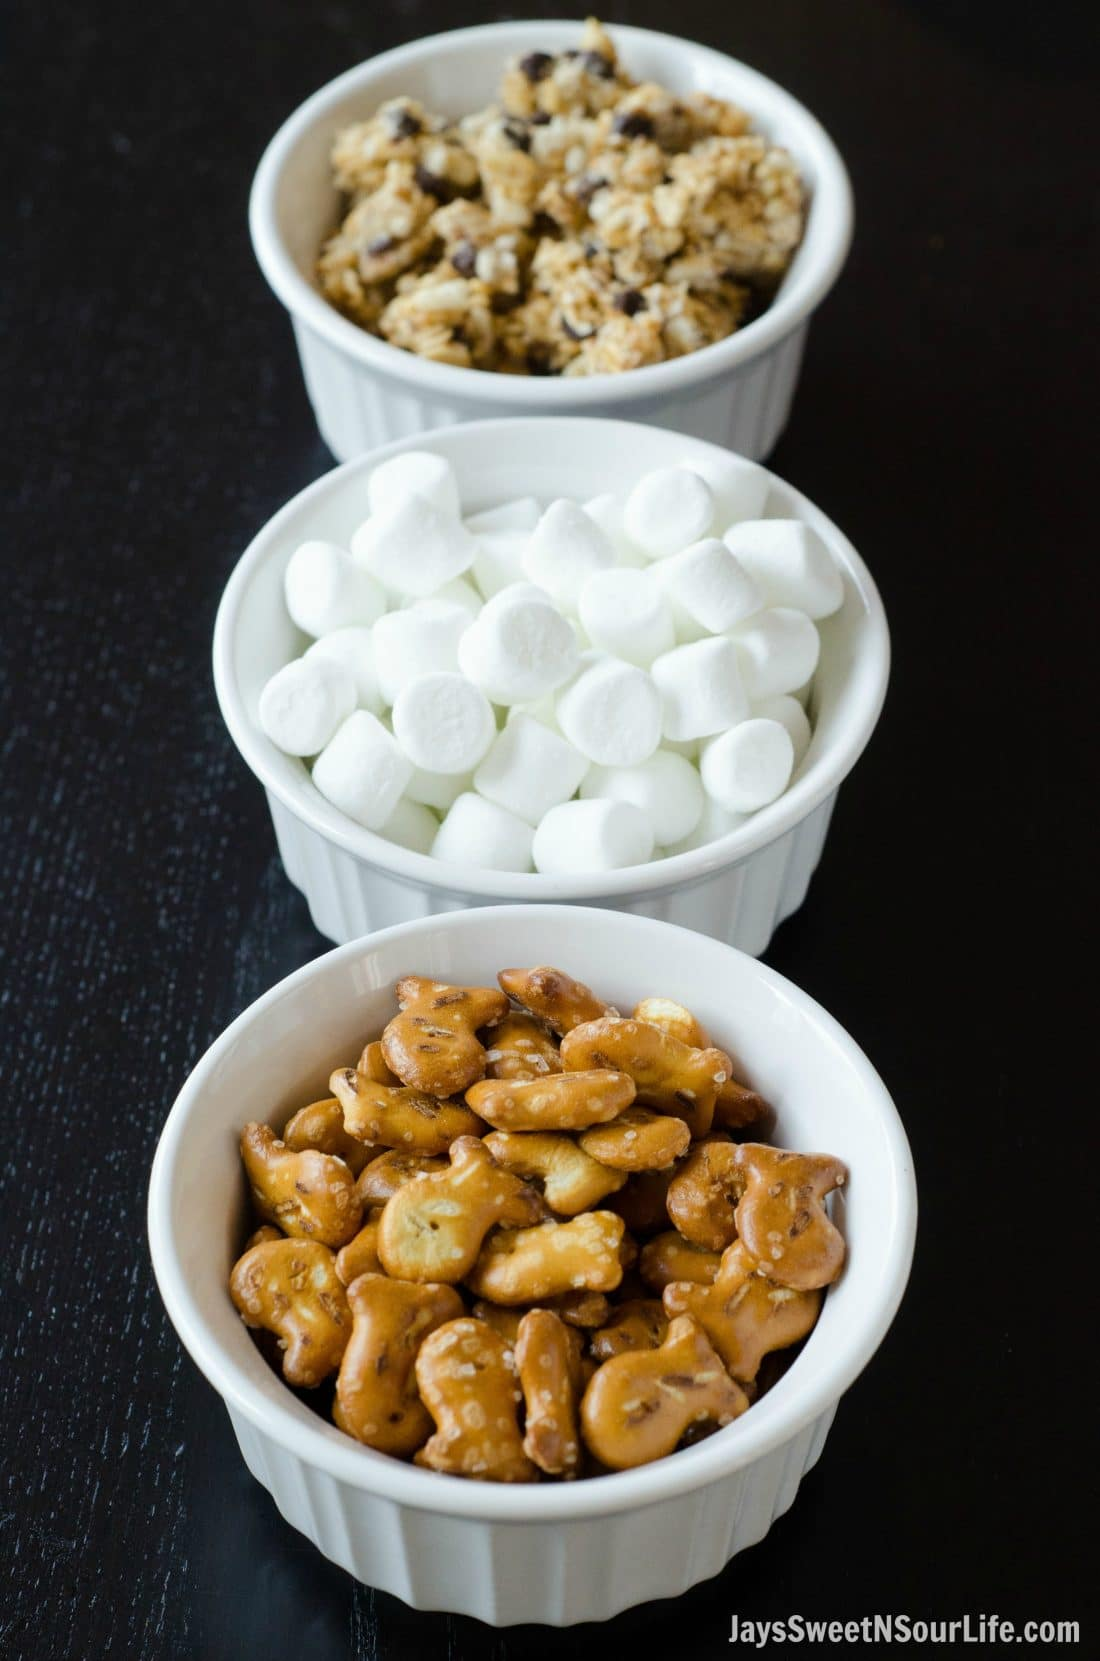 Mix something up so delicious even your kids will want to help make it. Start making your Goldfish Trail Mix with these 3 delicious ingredients, Marshmallows, goldfish pretzel crackers, and crumbled chocolatechip granola bars.